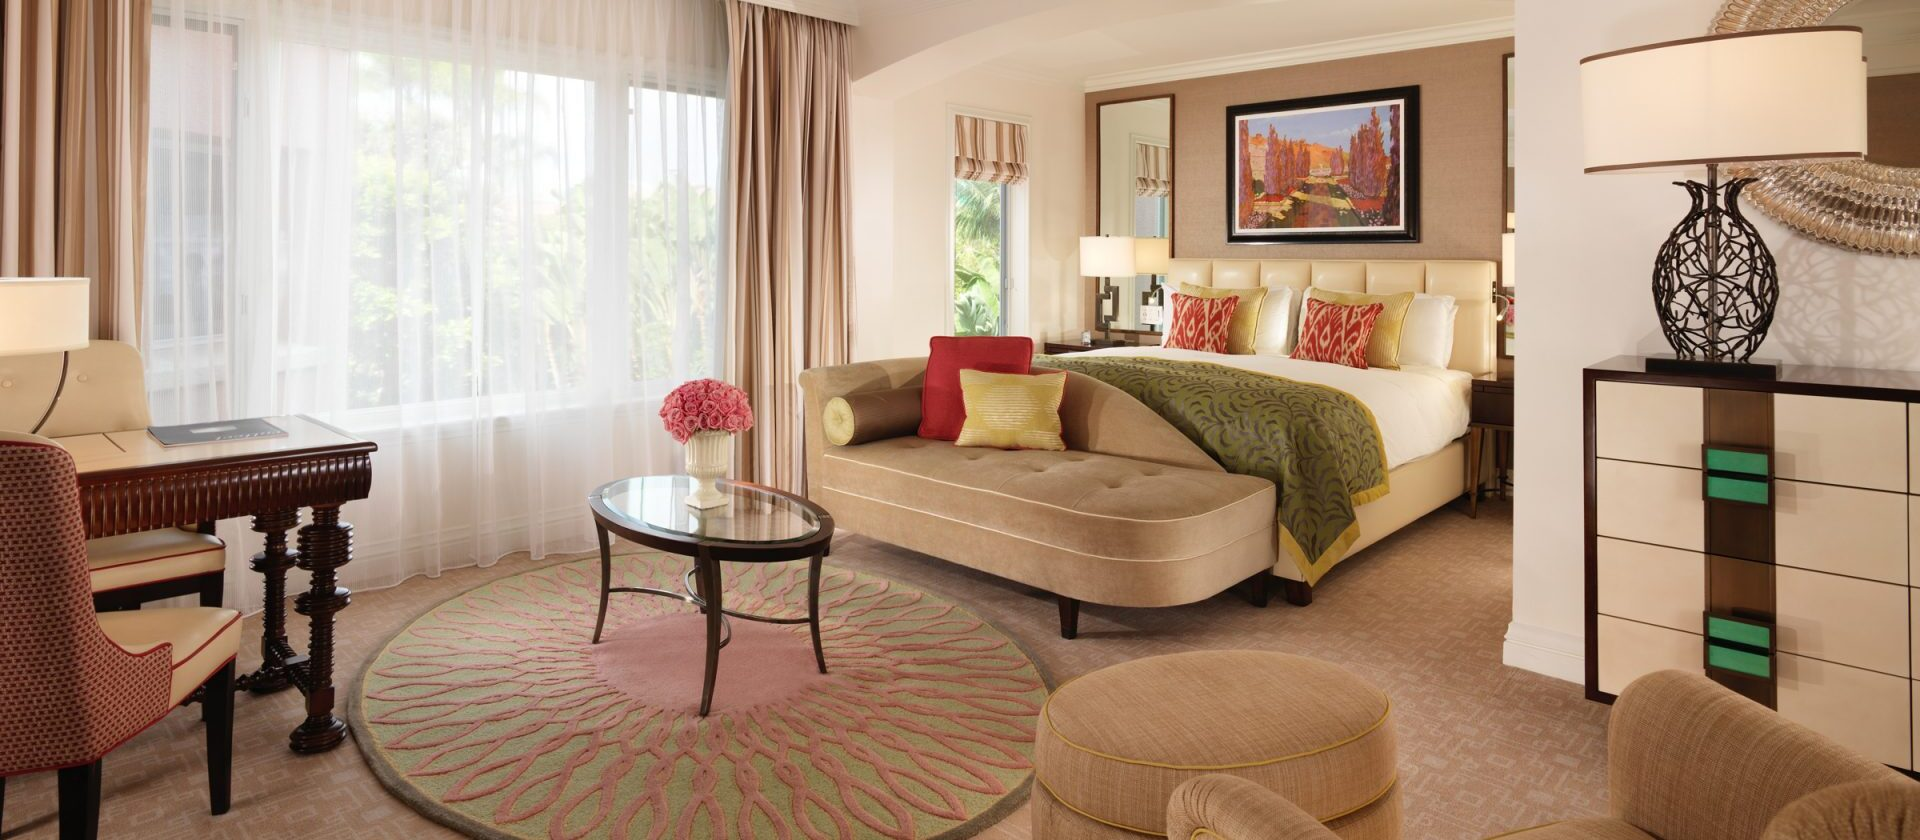 Deluxe Room The Beverly Hills Hotel Dorchester Collection